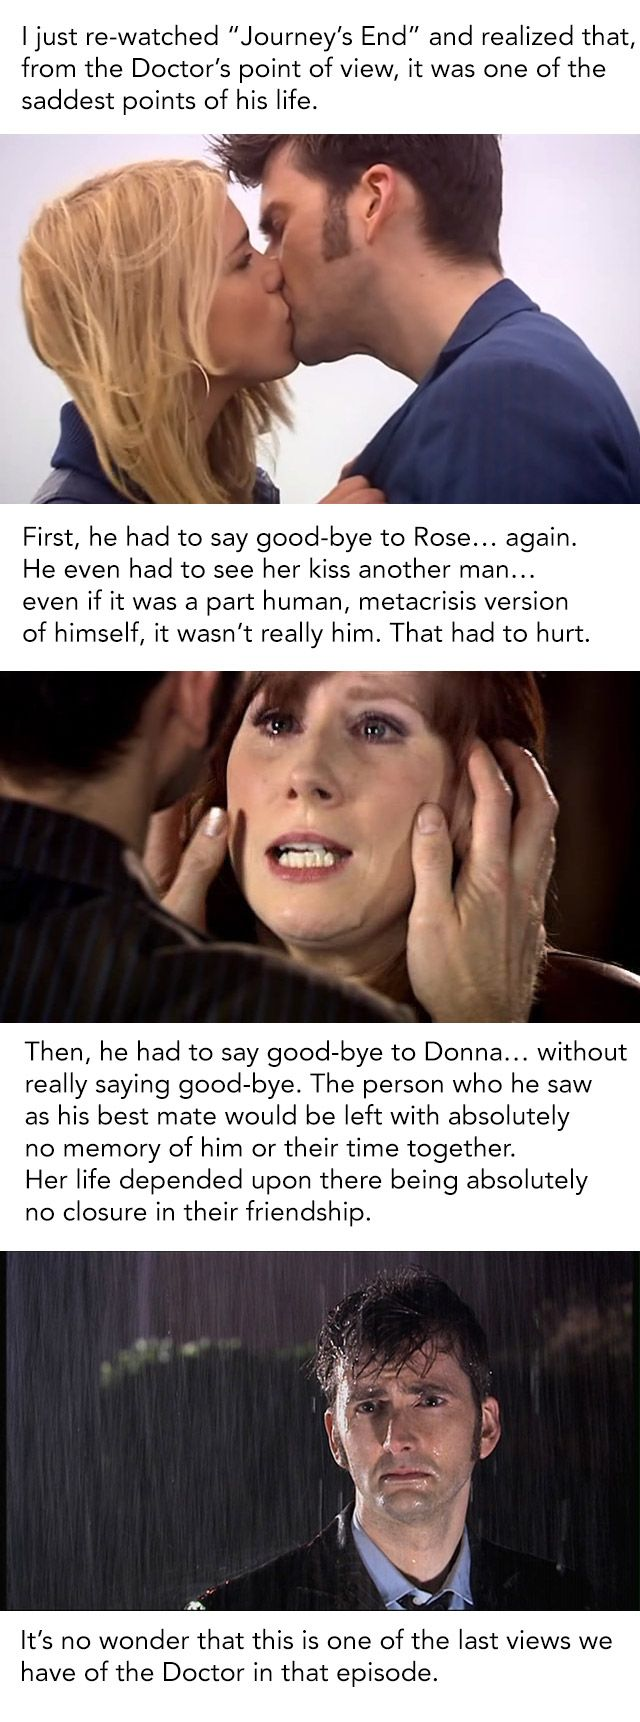 Two hearts breaking… both of them his. --- add another one for me. But at the same time, Donna and Rose had their hearts broken. Donna lost her better self, and Rose lost the 'real' Doctor.